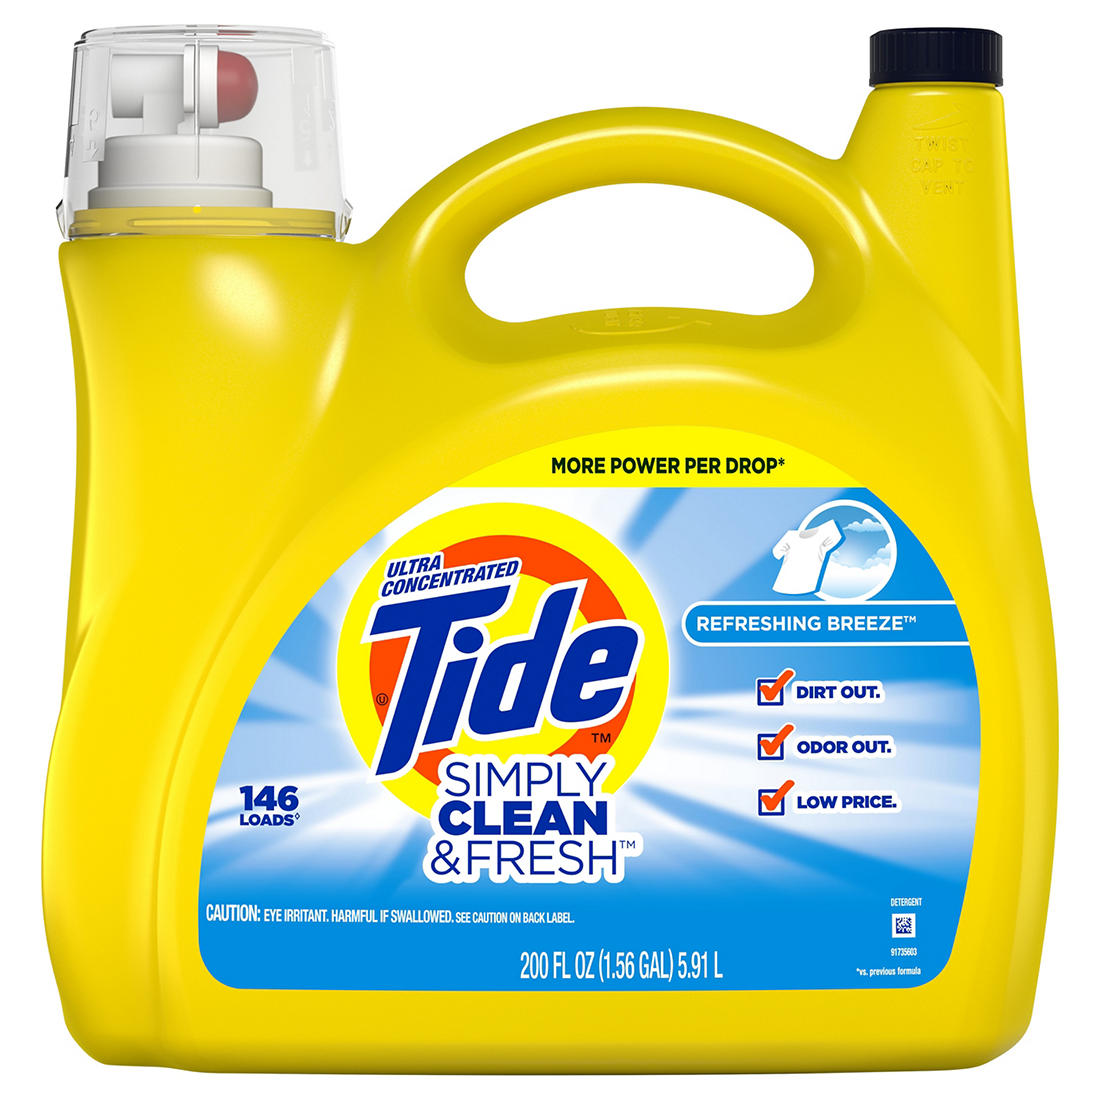 photograph regarding Tide Simply Clean Printable Coupons named Tide Merely Fresh new New Contemporary Breeze Extremely Focused Liquid Laundry Detergent, 200 fl. oz.